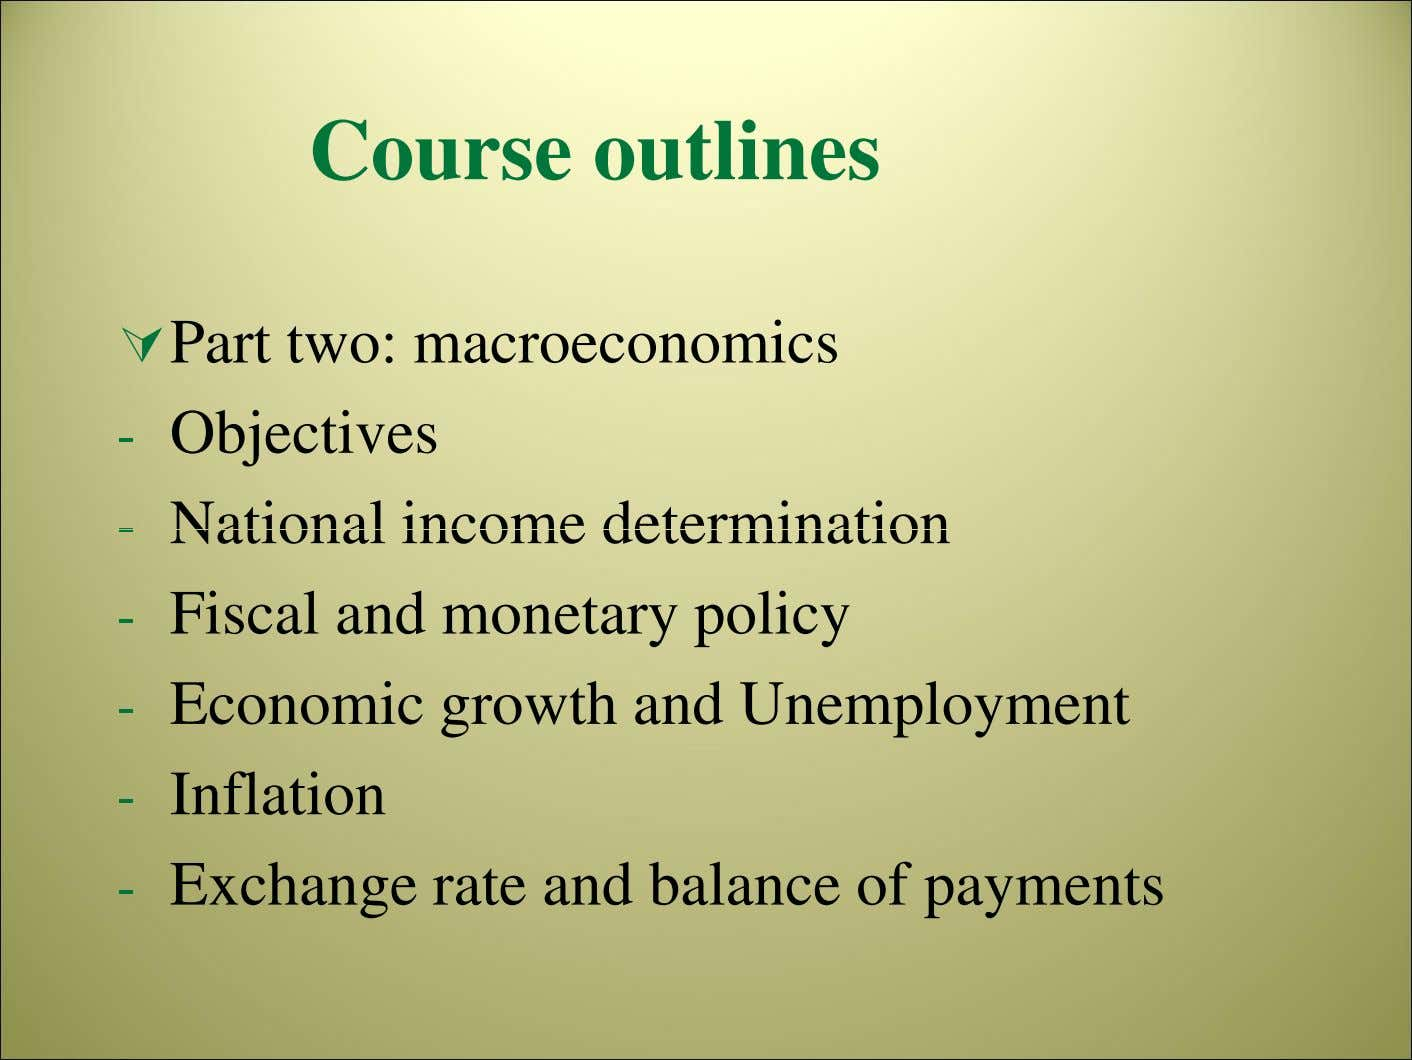 Course outlines Part two: macroeconomics - Objectives - National income determination - Fiscal and monetary